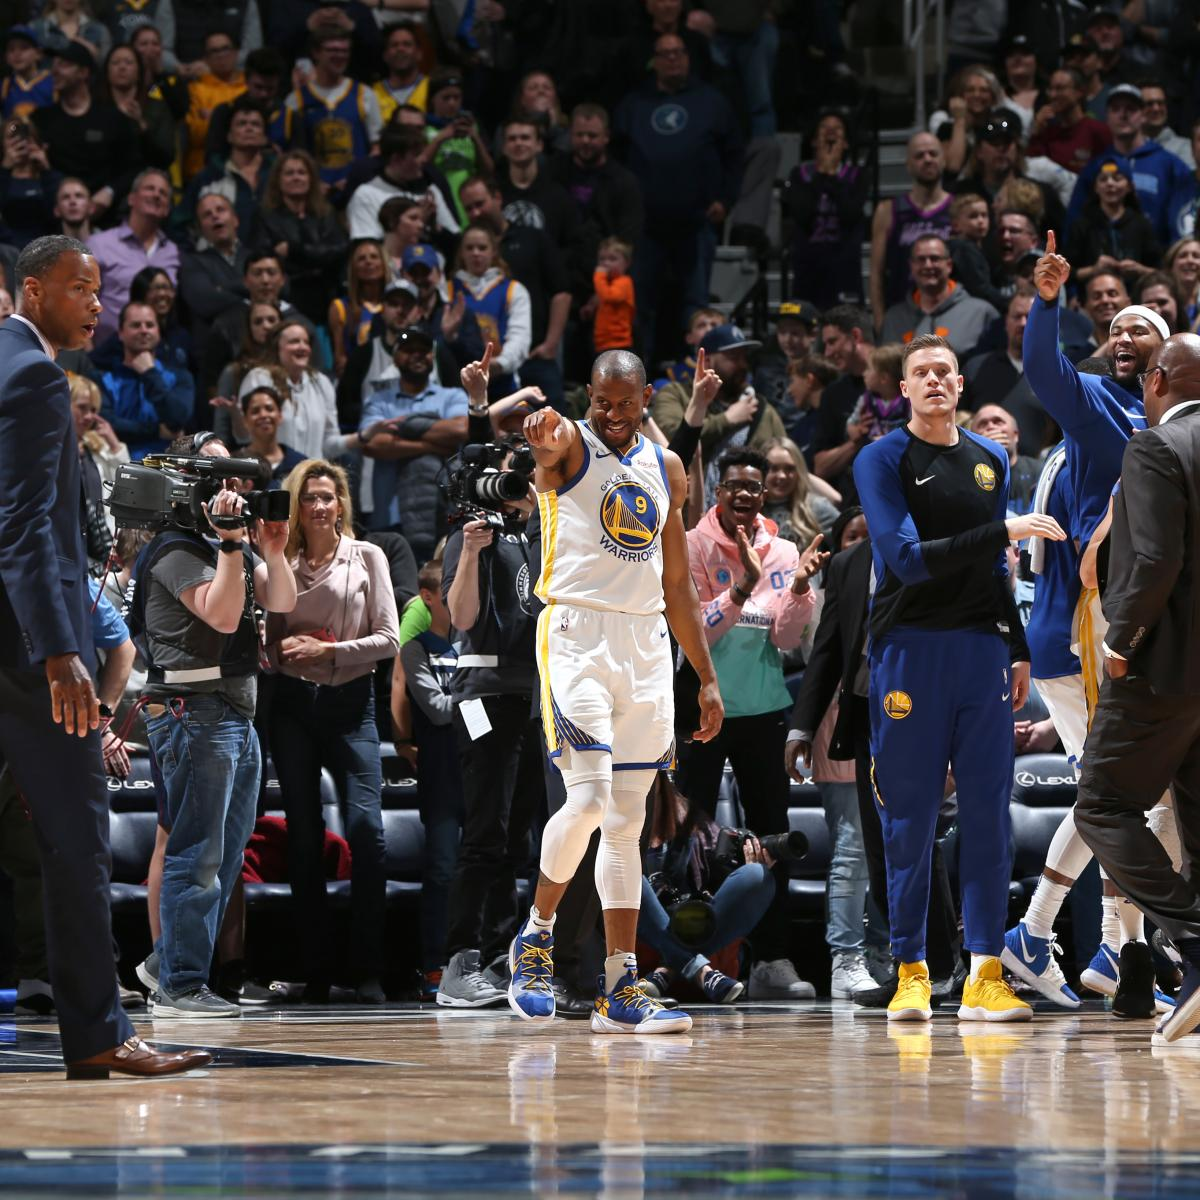 As the Minnesota Timberwolves held on for a 131-130 overtime win over the Golden State Warriors on Friday night, three stars rose to the occasion: Karl-Anthony Towns, Stephen Curry and the officiating crew...